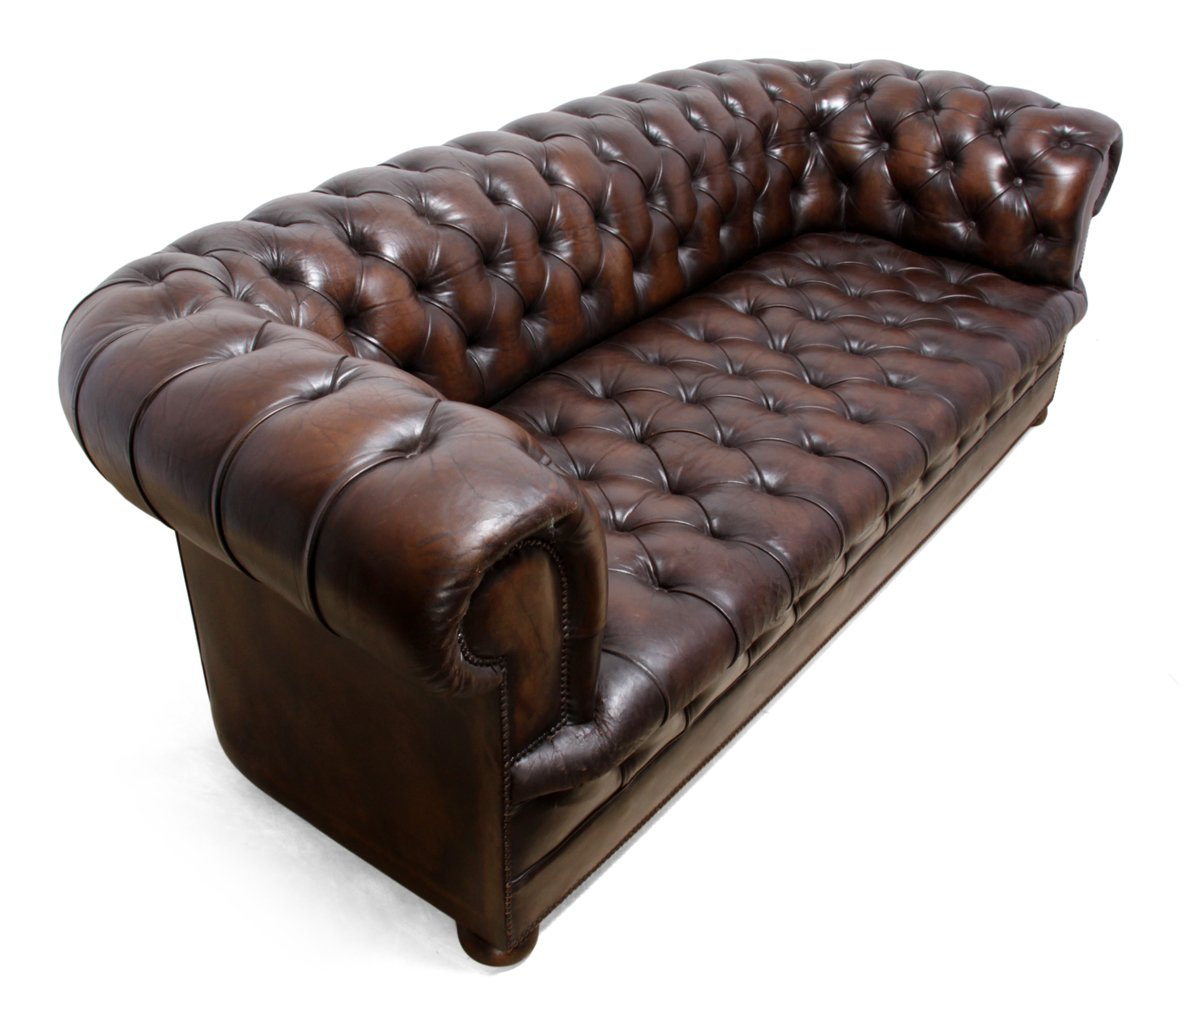 canap chesterfield vintage en cuir marron 1960s en vente sur pamono. Black Bedroom Furniture Sets. Home Design Ideas